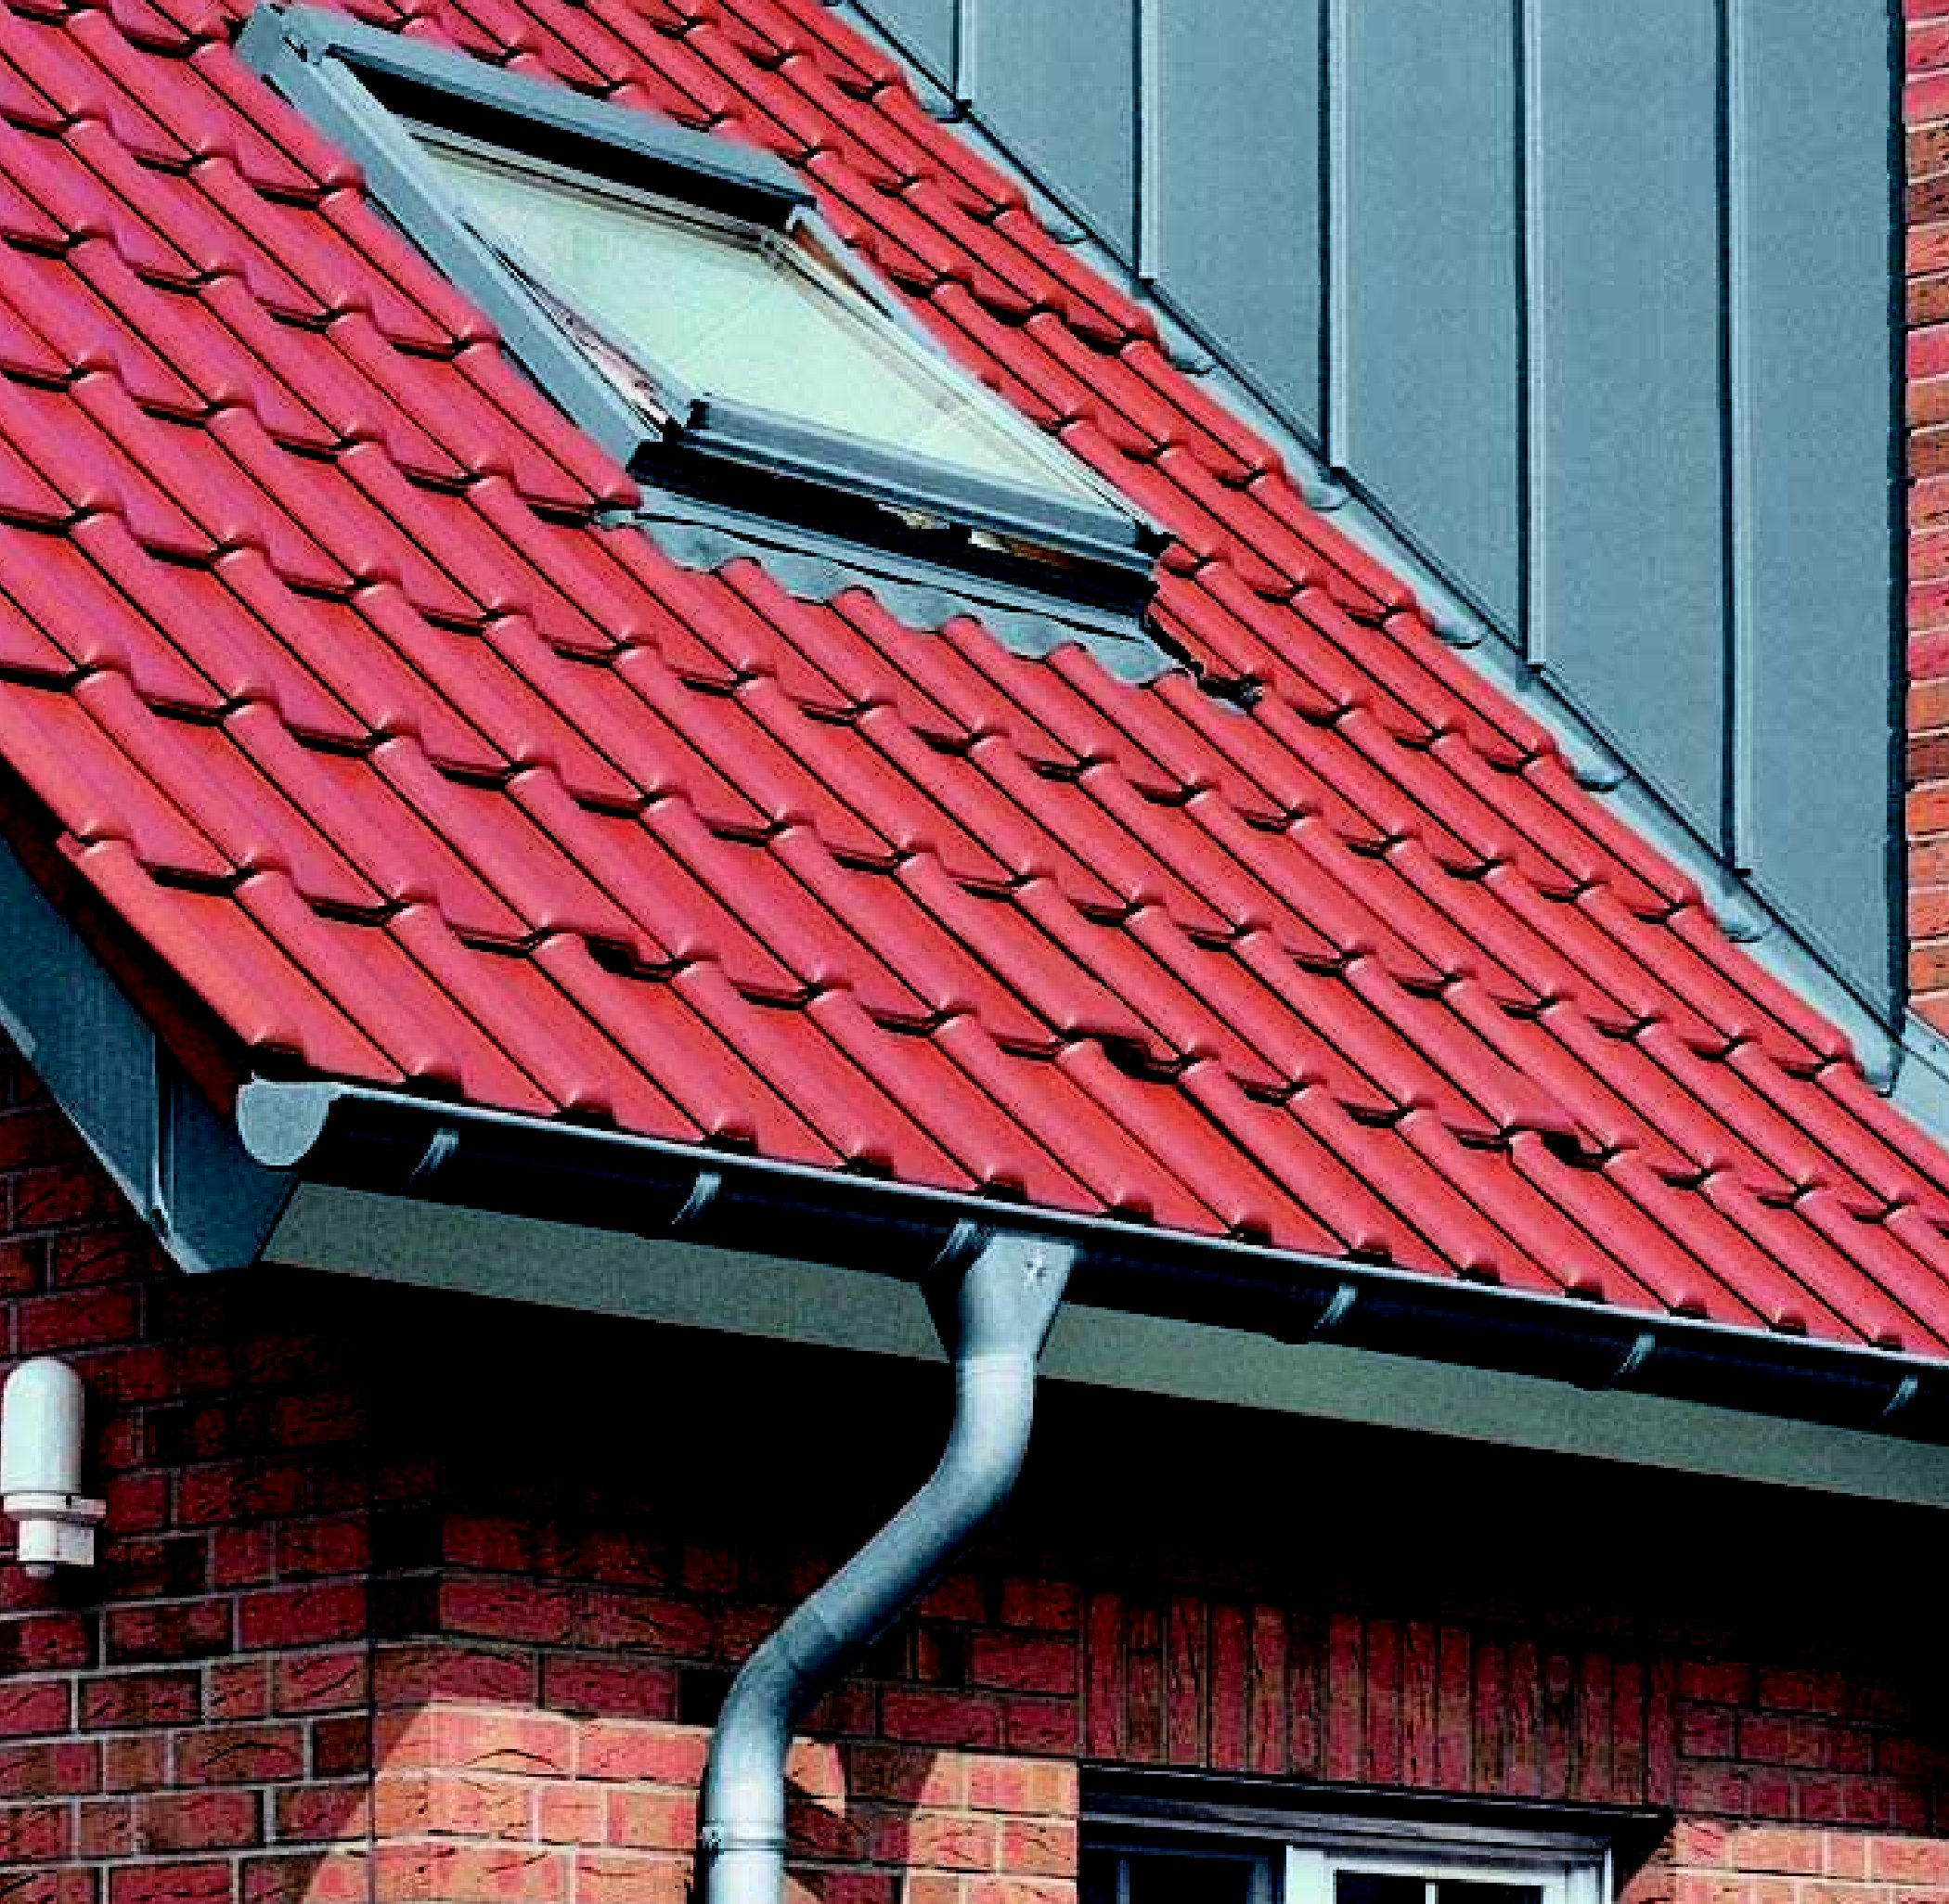 1 - Drainage System: If You Have A Flat Roof